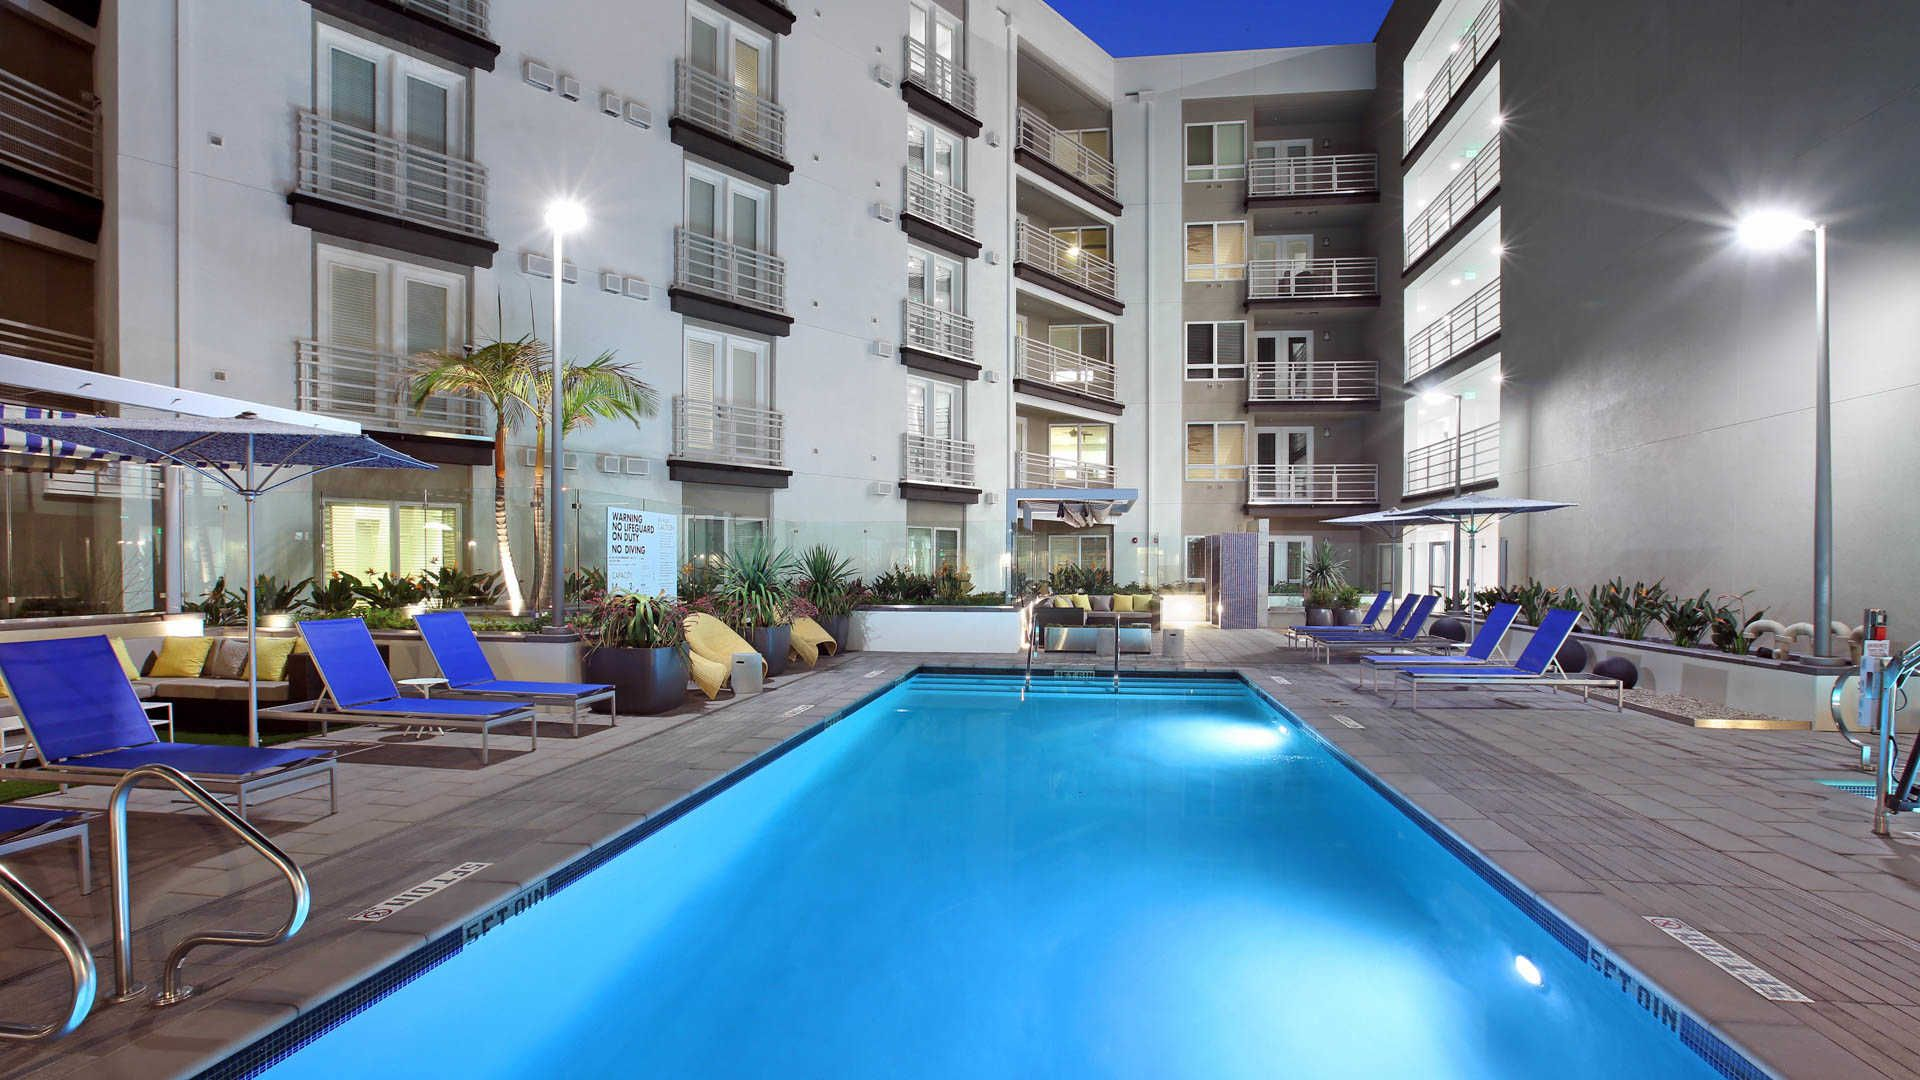 Altitude Apartments West Los Angeles Apartment Swimming Pools